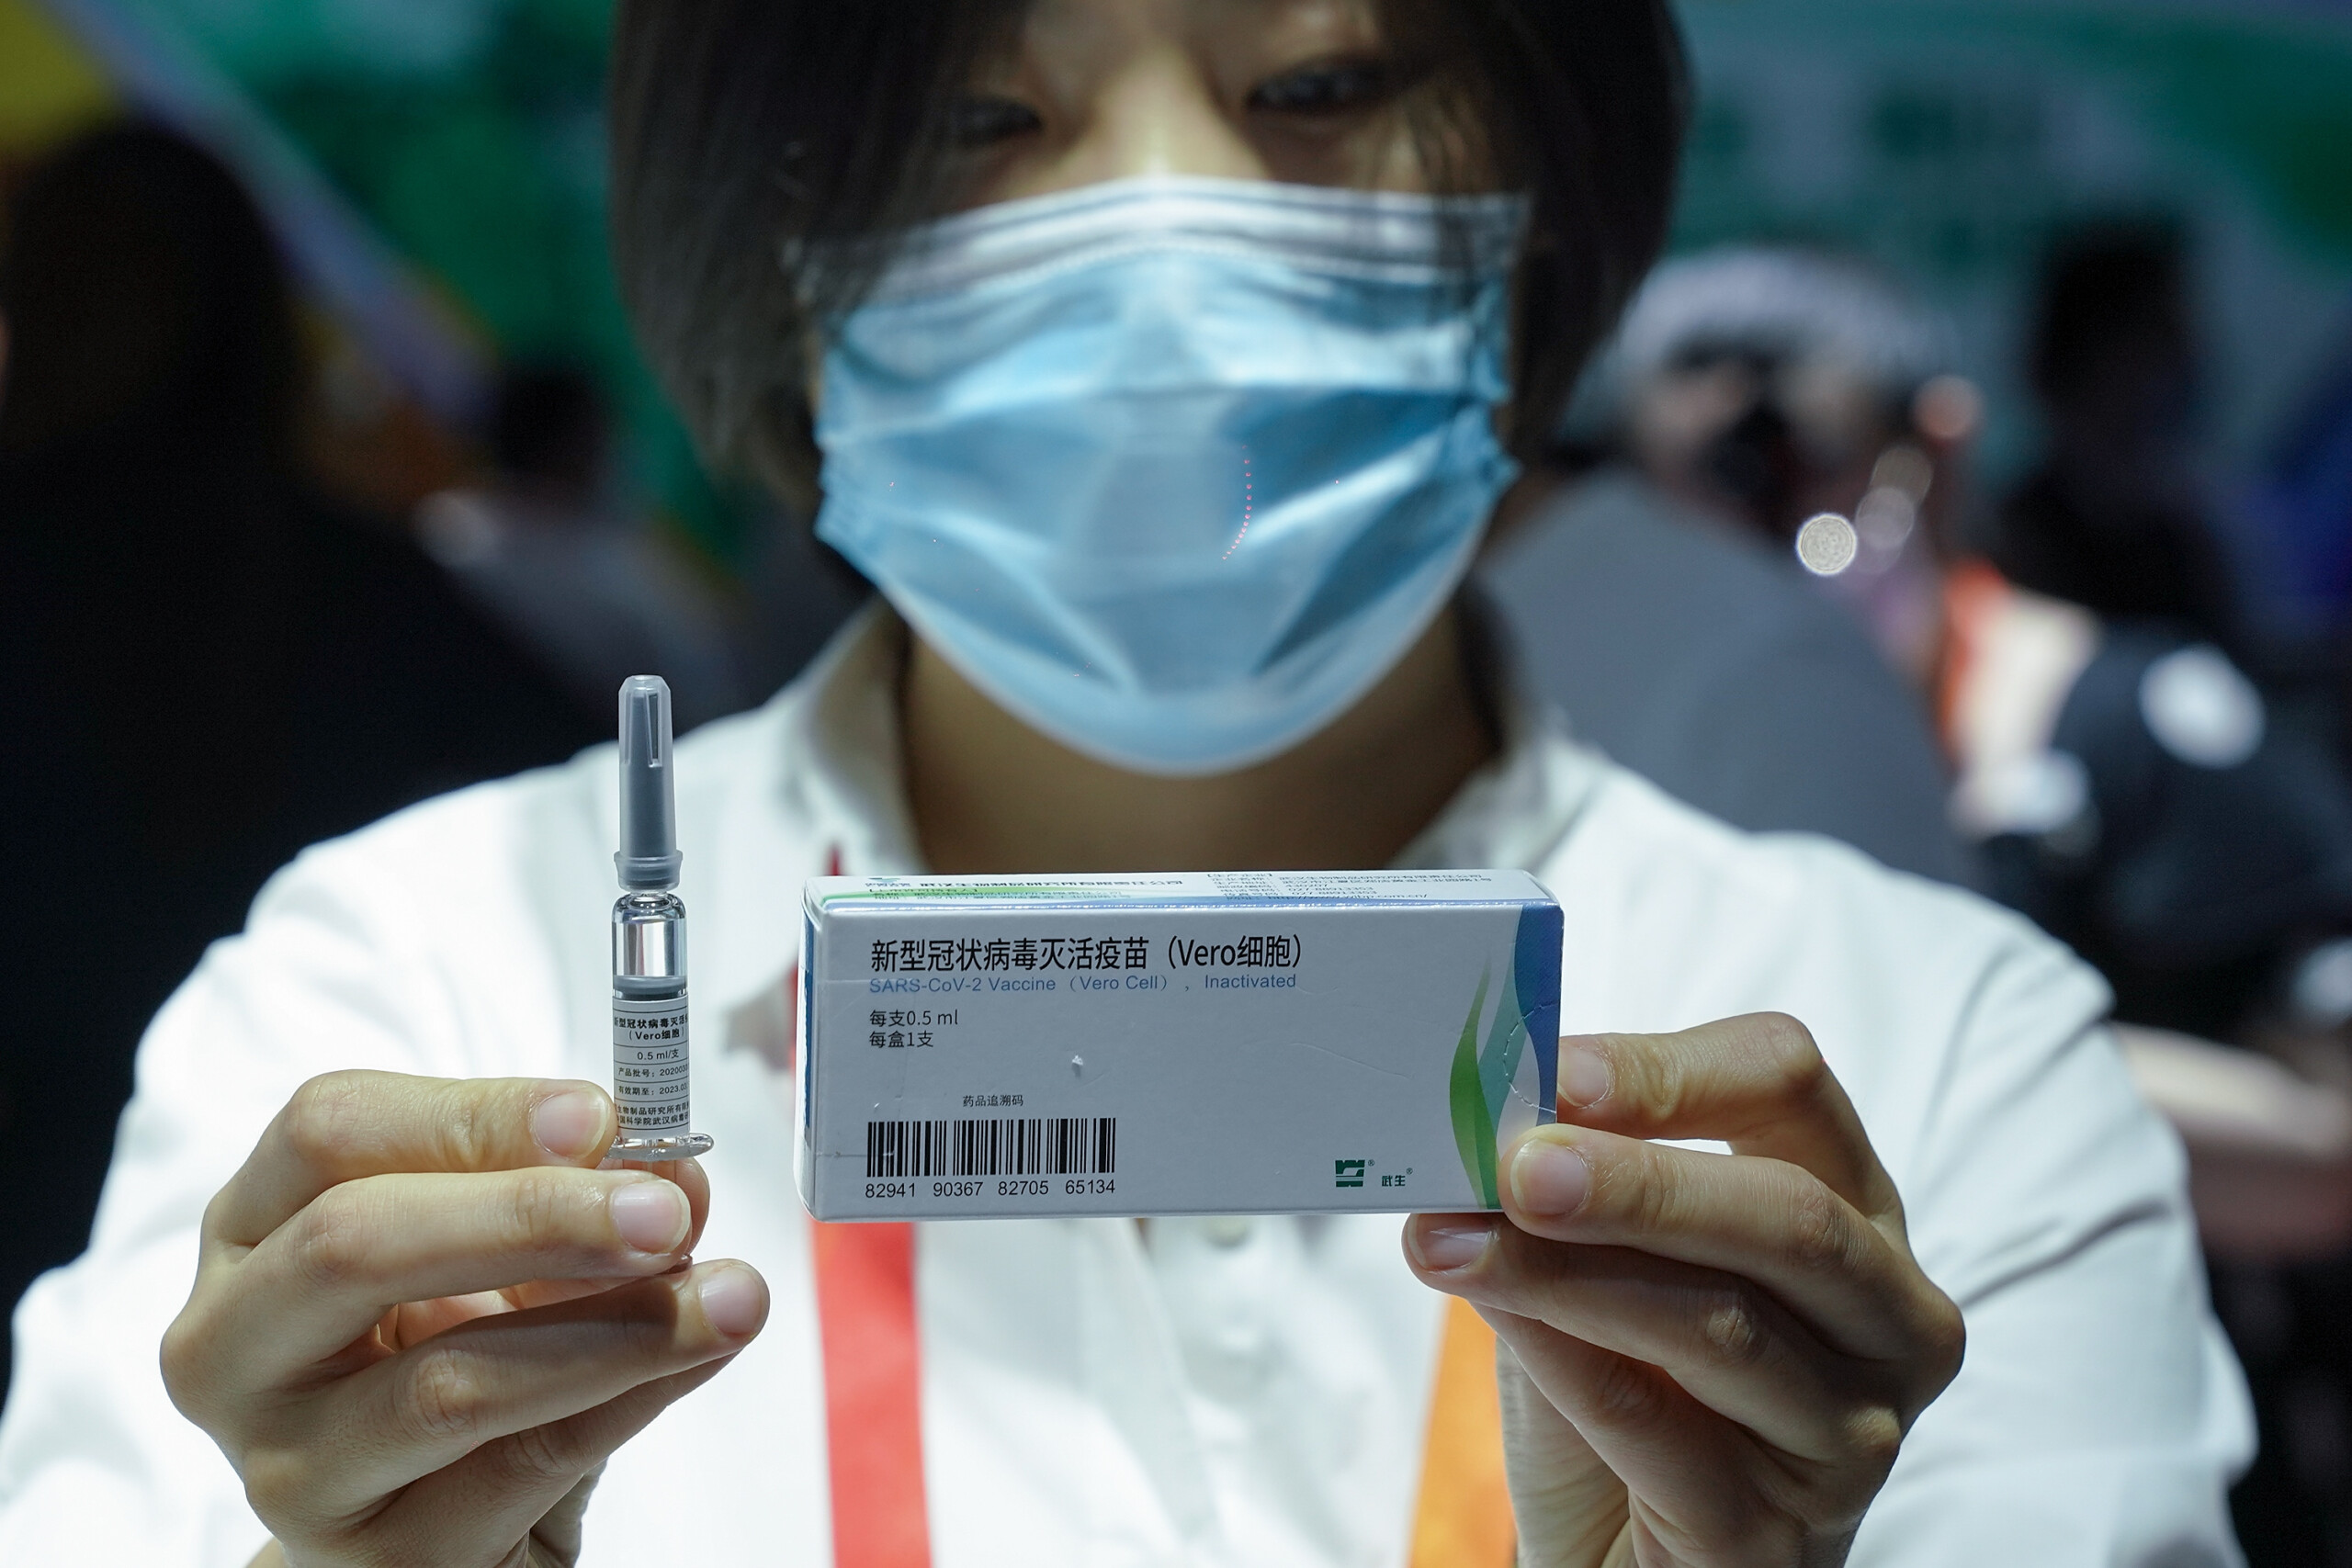 China says it got WHO support for coronavirus vaccine emergency use - WISH-TV